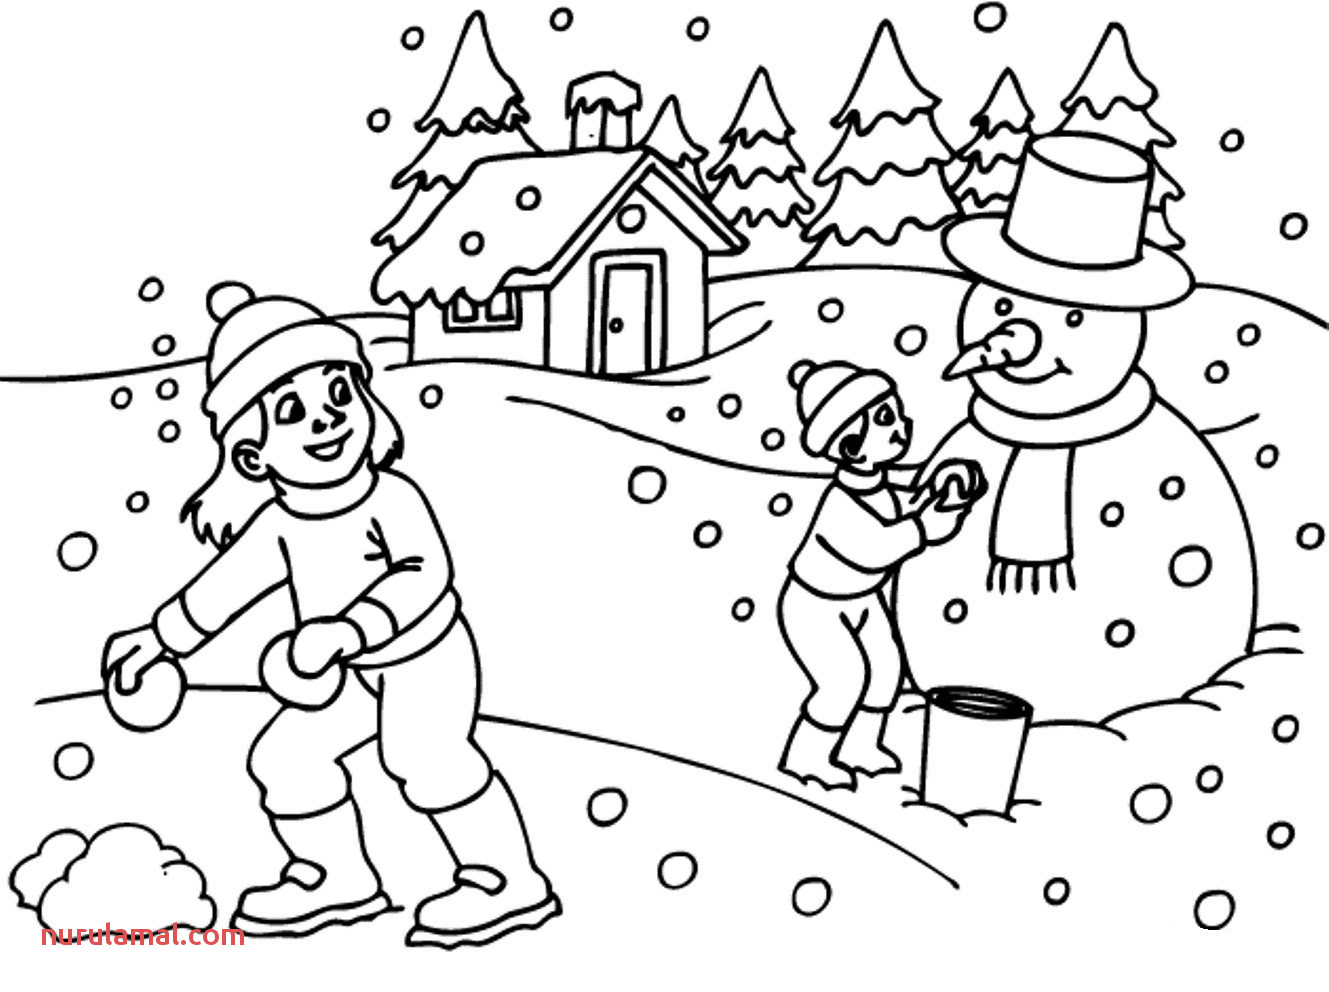 7a8c5dbe6428e12f024c5d044b3e5885 18new free printable winter coloring pages clip arts coloring 1329 992